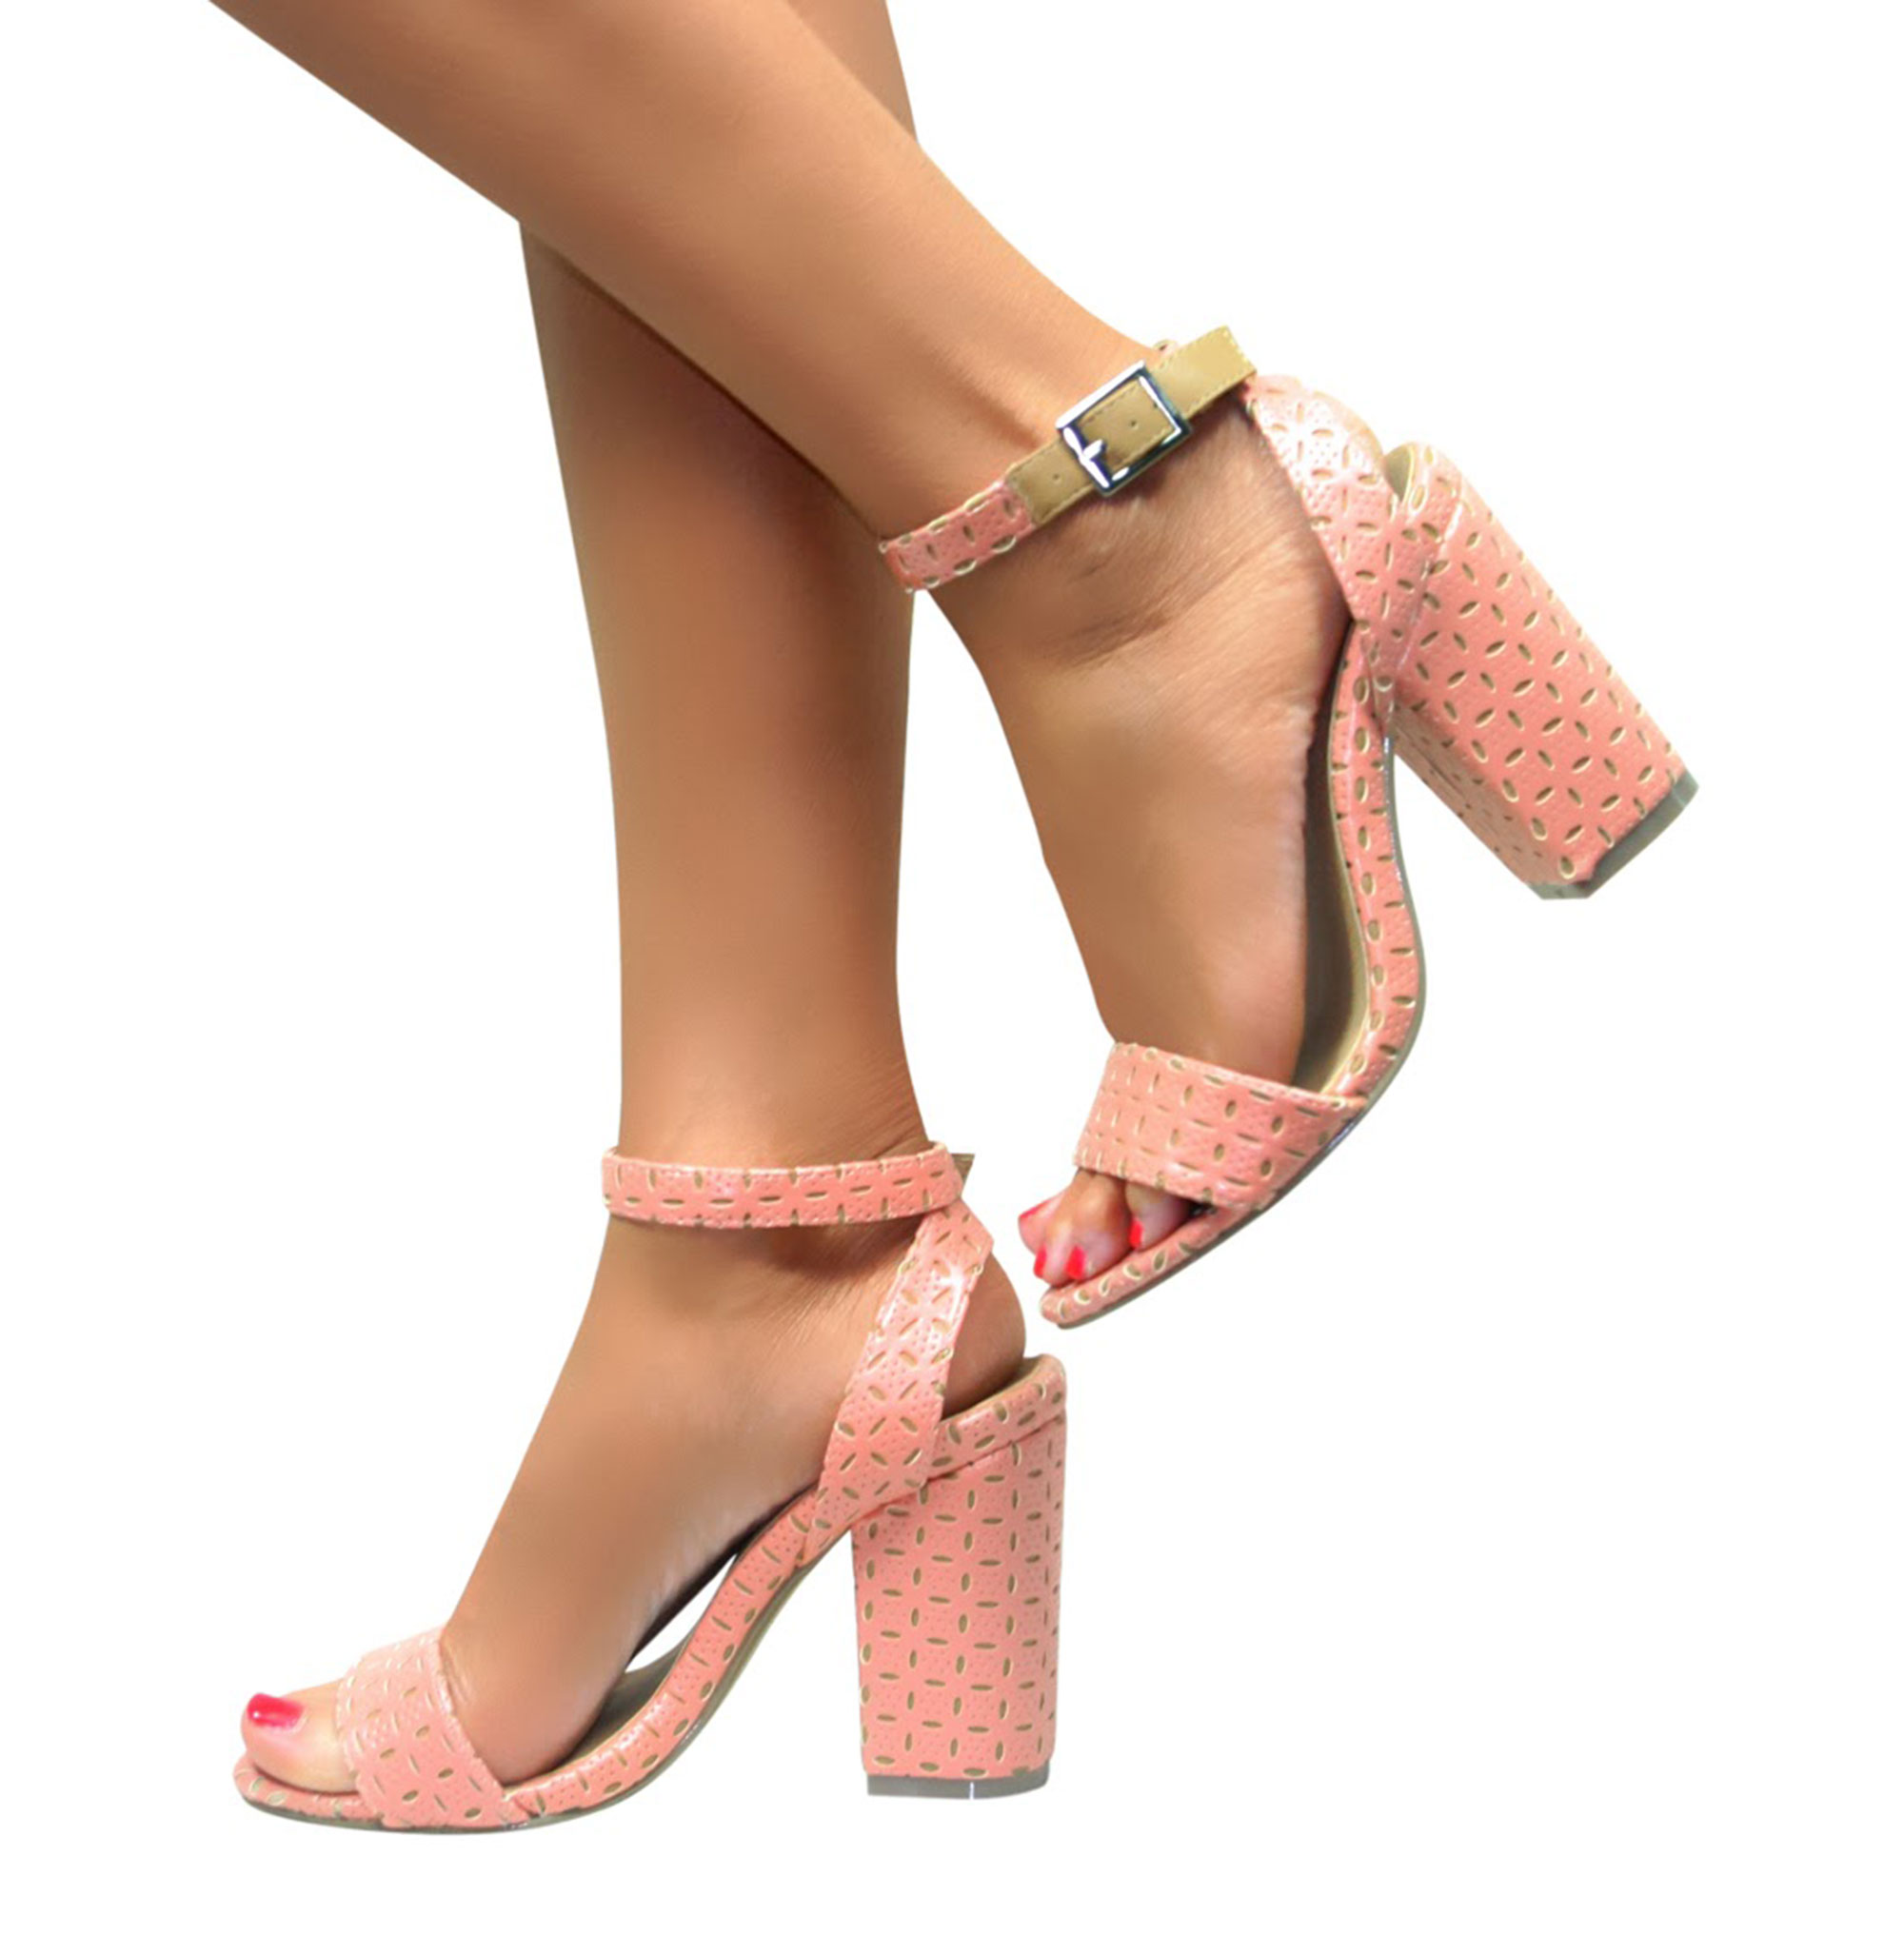 LADIES MID HIGH BLOCK HEELS PEEP TOE SANDALS ANKLE STRAP ...